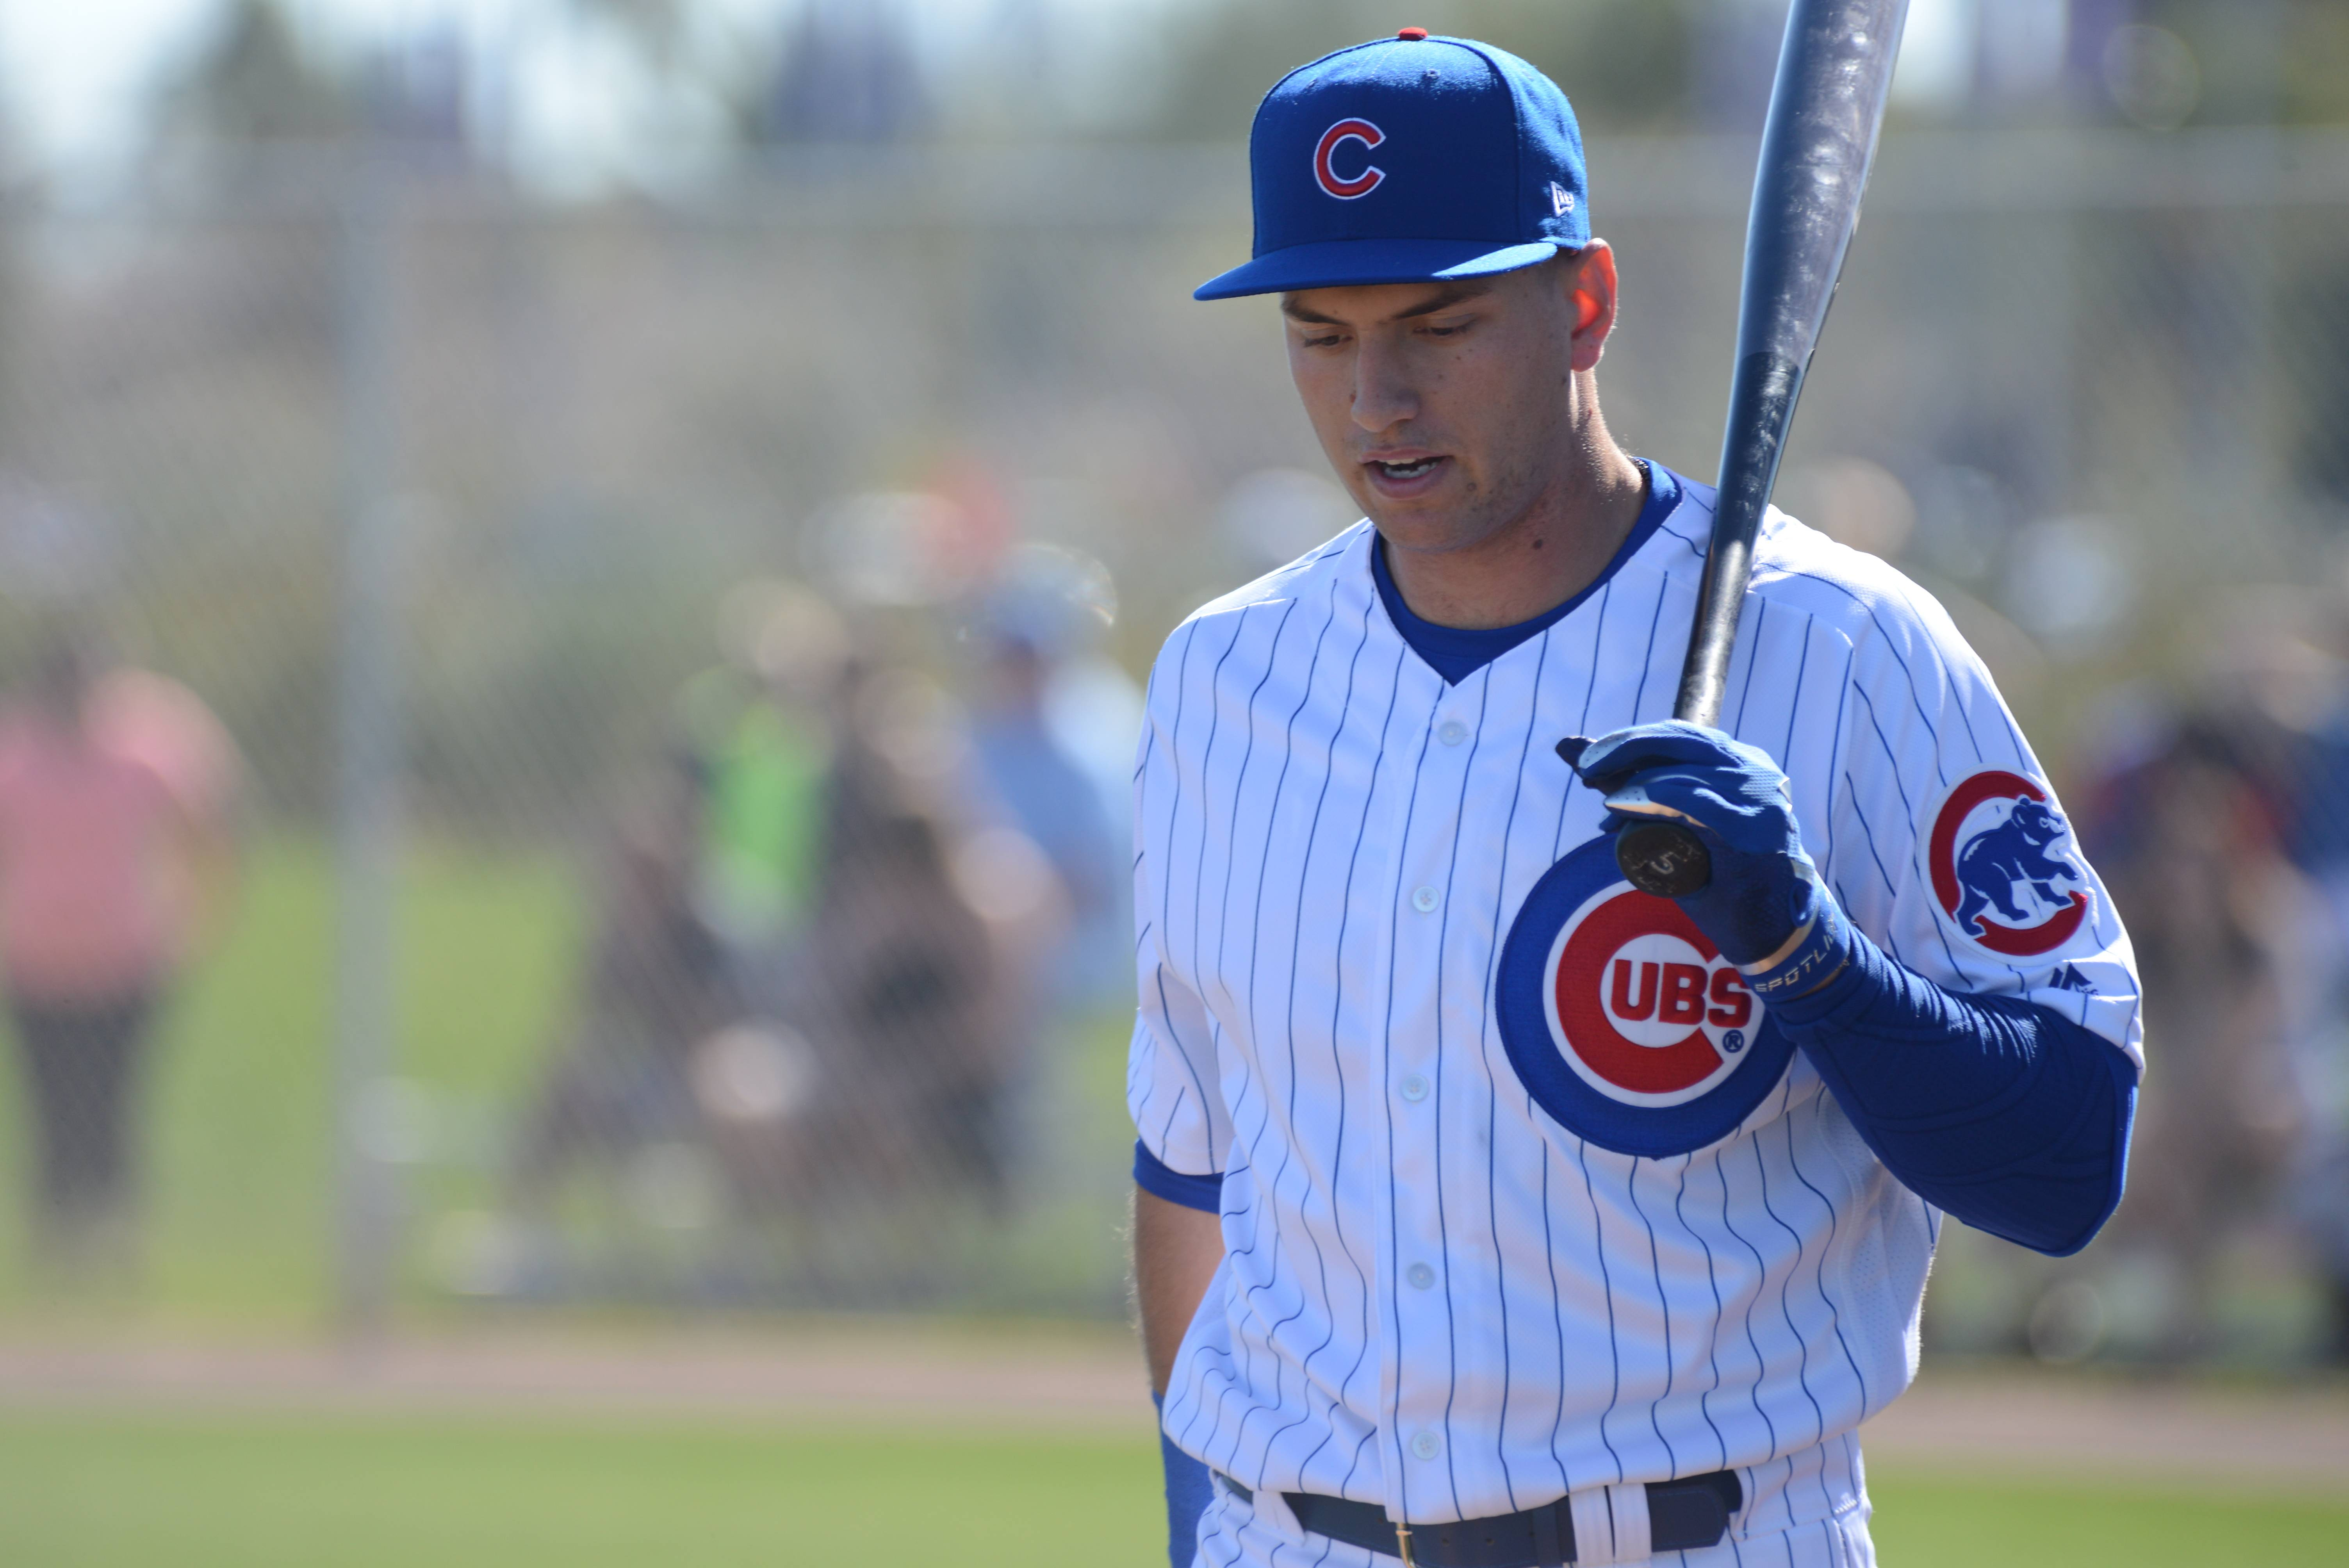 Albert Almora Jr. is only 22 years old, but the Chicago Cubs outfielder displays baseball IQ well beyond his years.